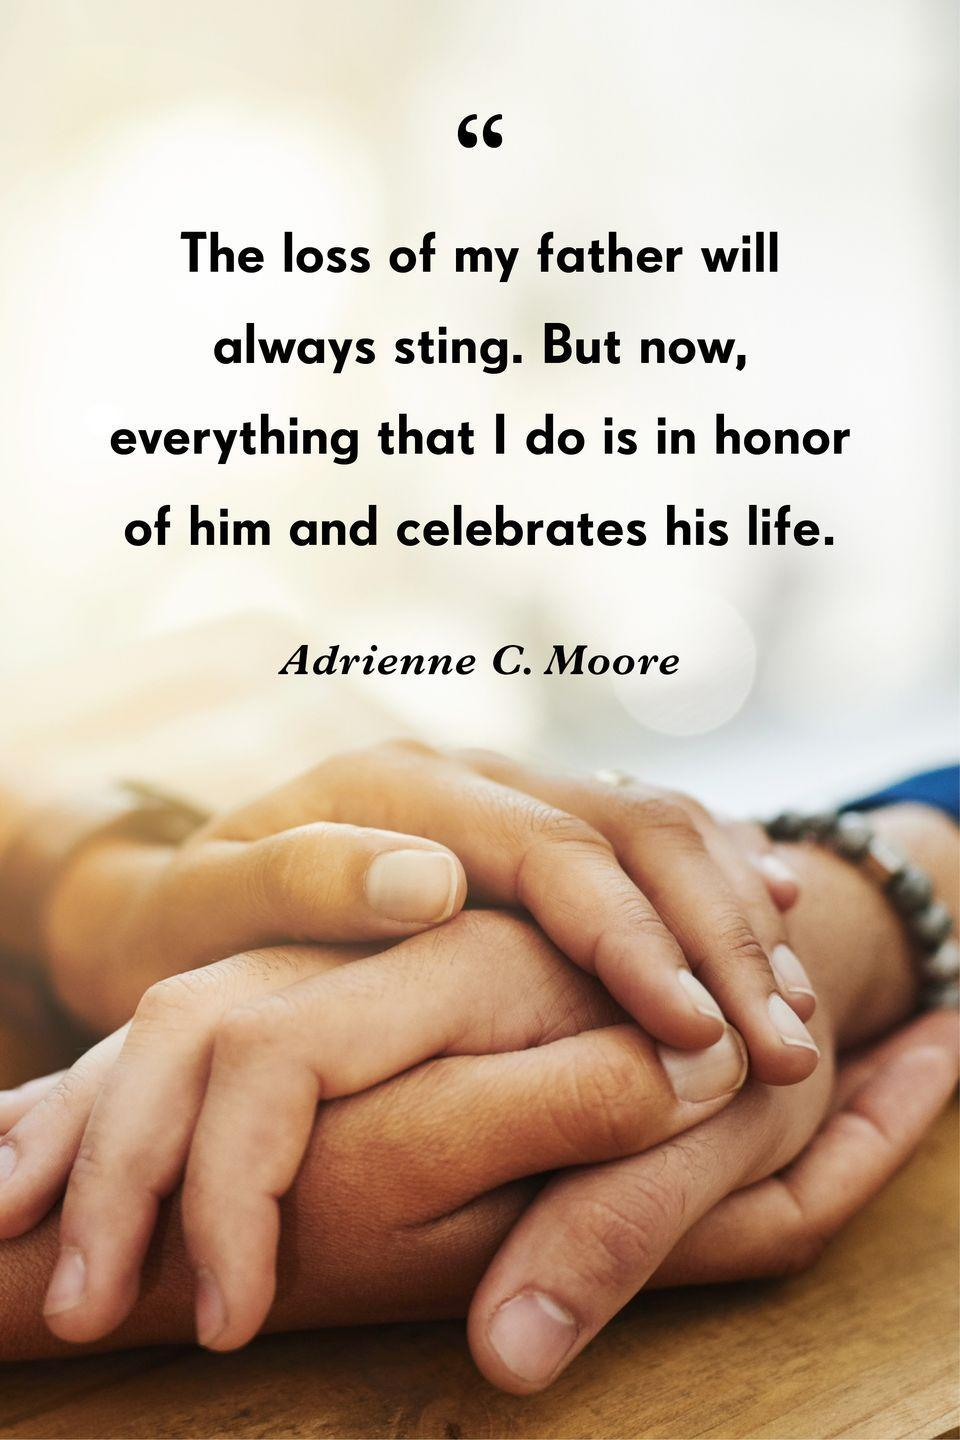 """<p>""""The loss of my father will always sting. But now, everything that I do is in honor of him and celebrates his life.""""</p>"""